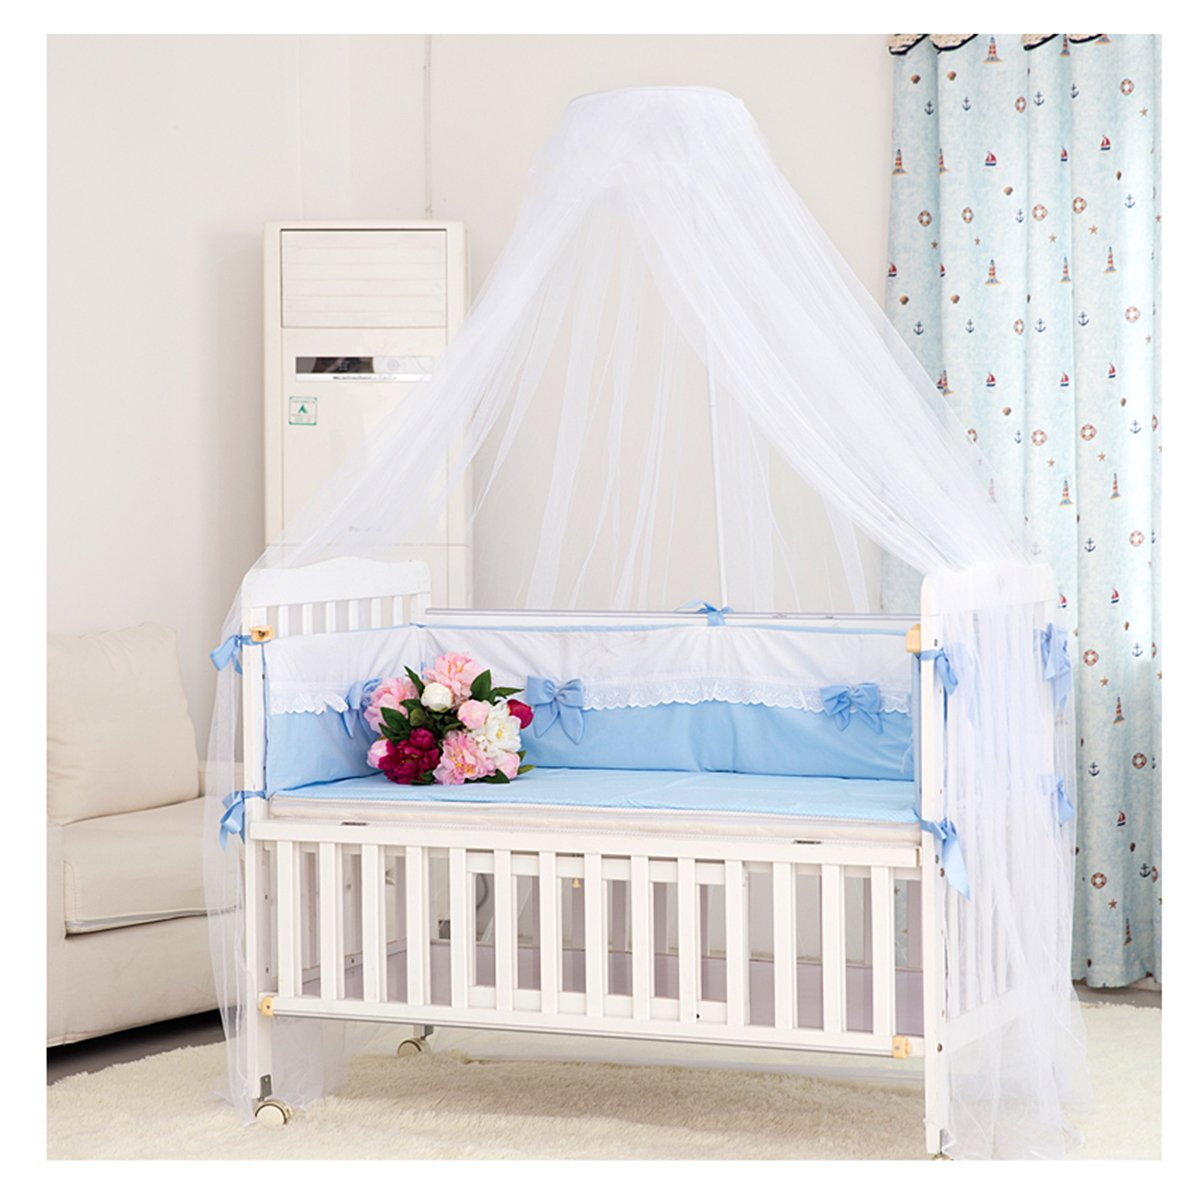 - LEORX Mosquito Netting Toddler Bed Crib Canopy Mosquito Netting